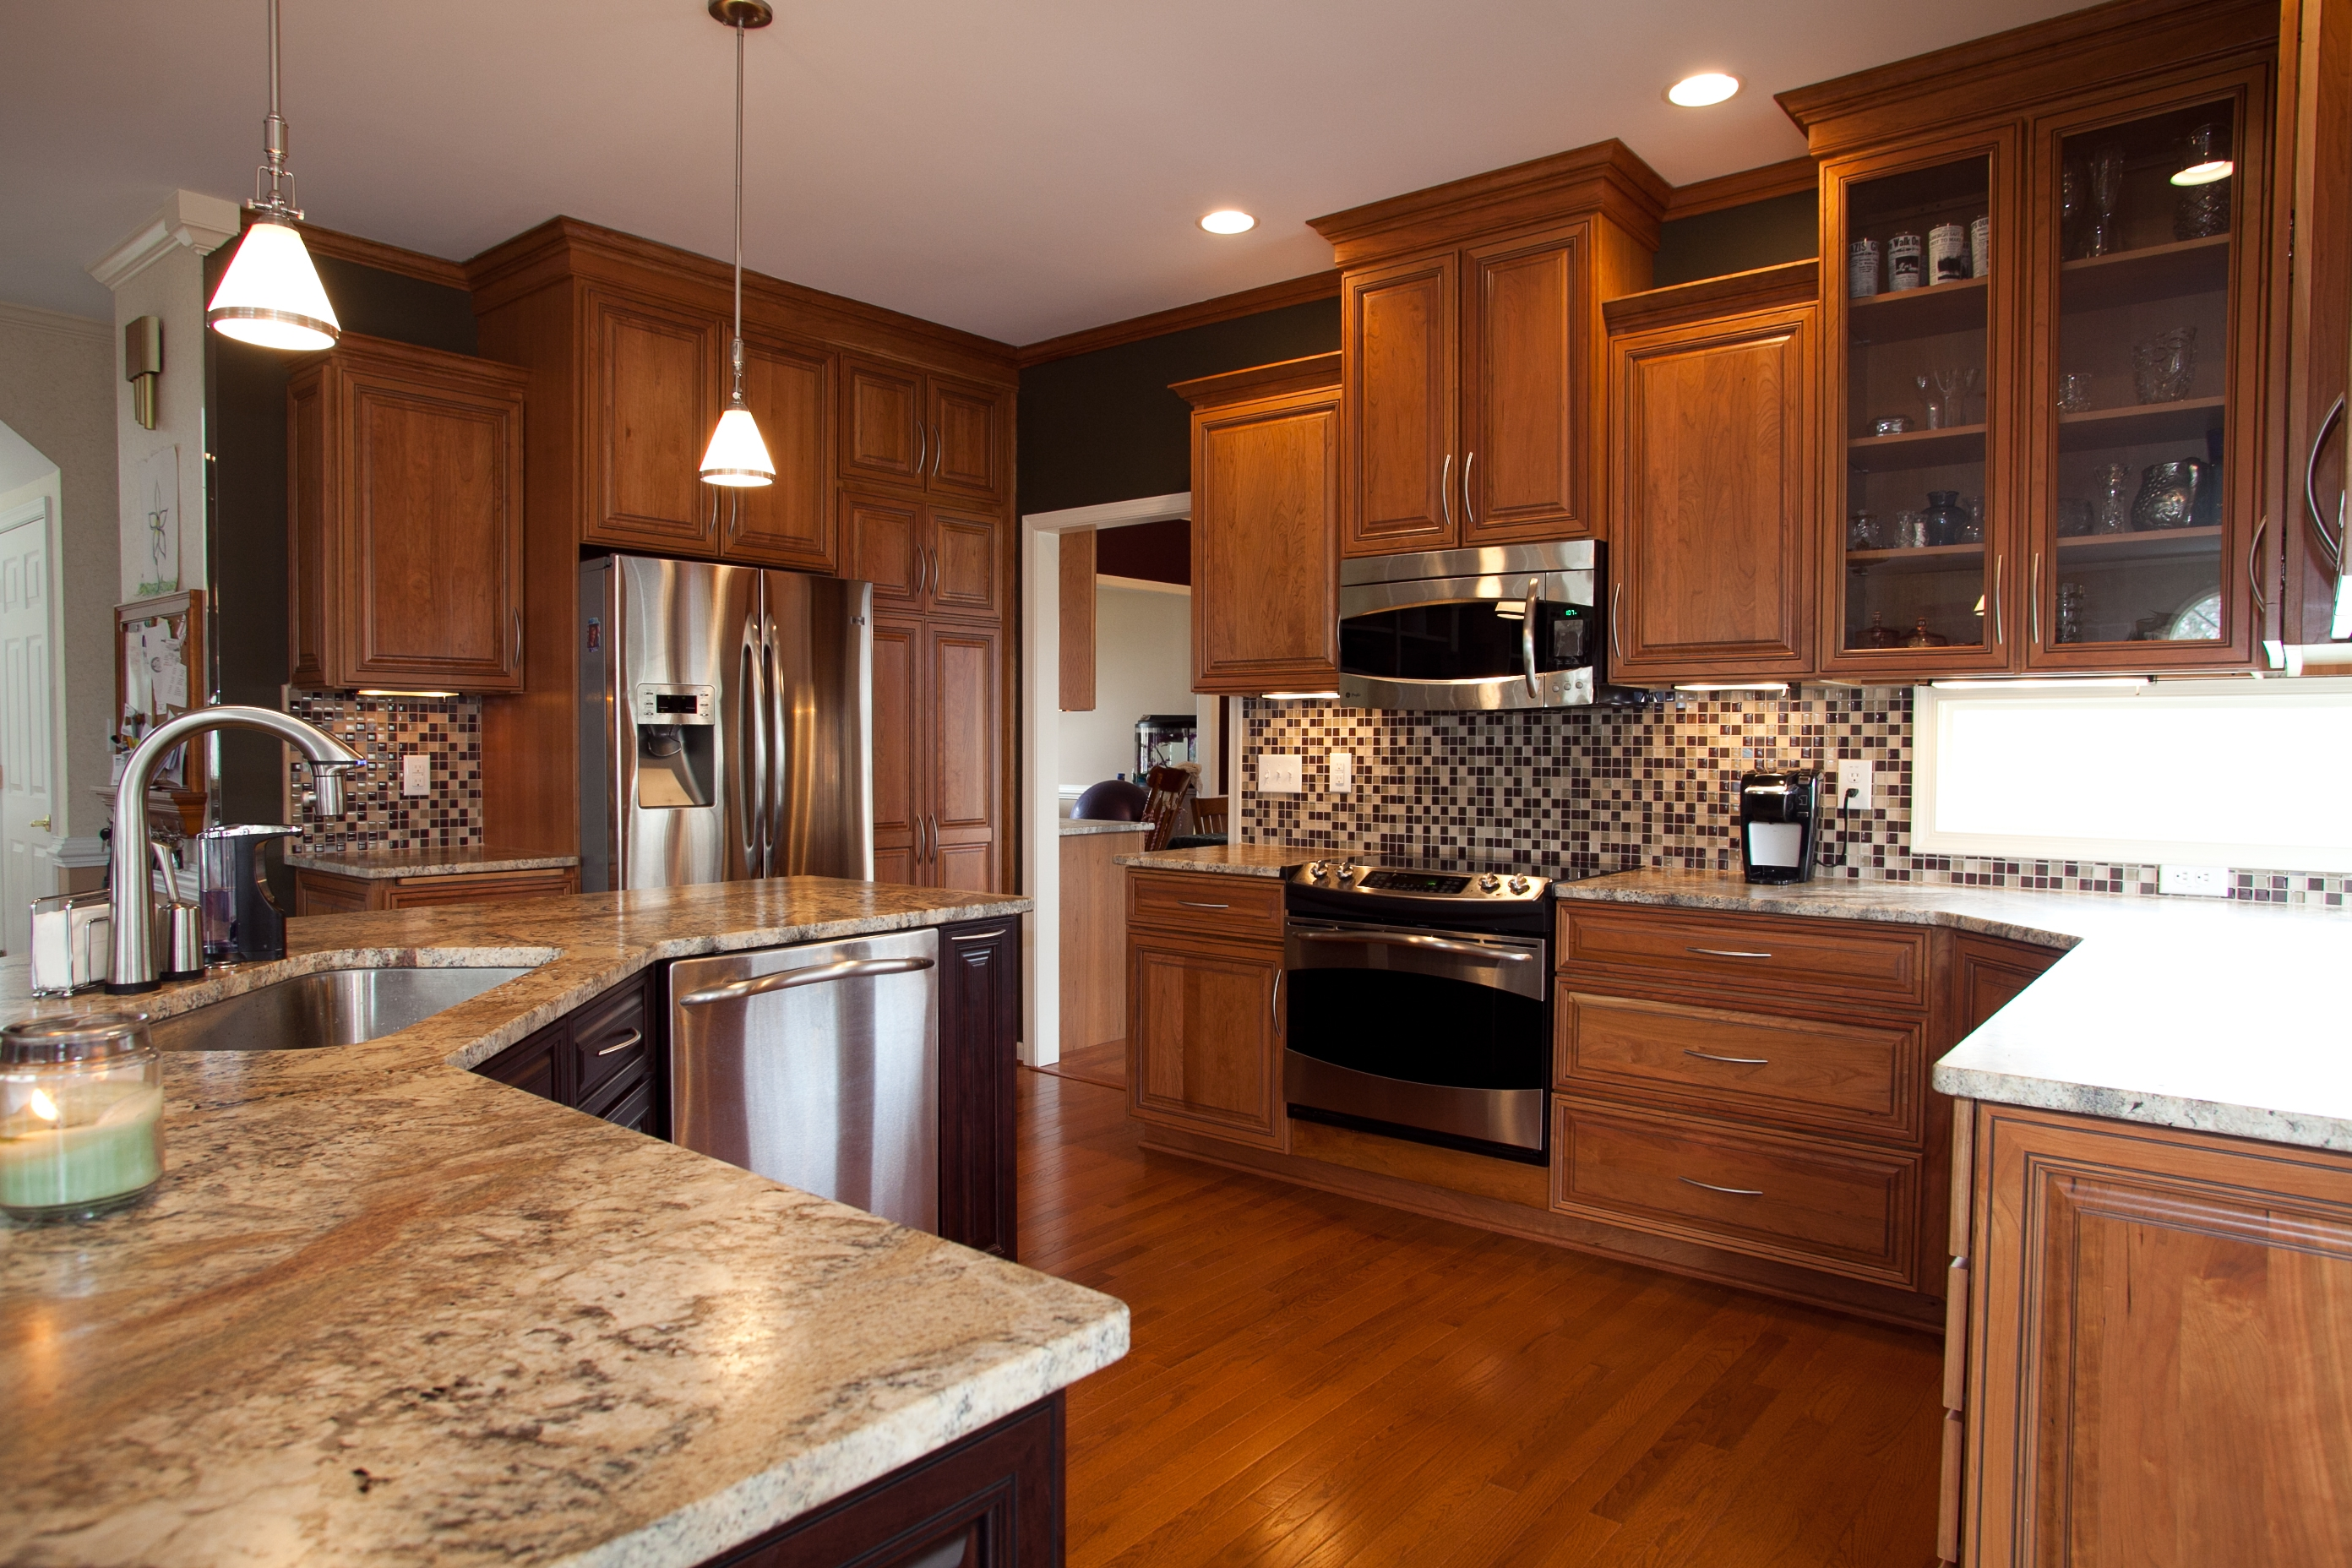 Kitchen Cabinets Newport News Va